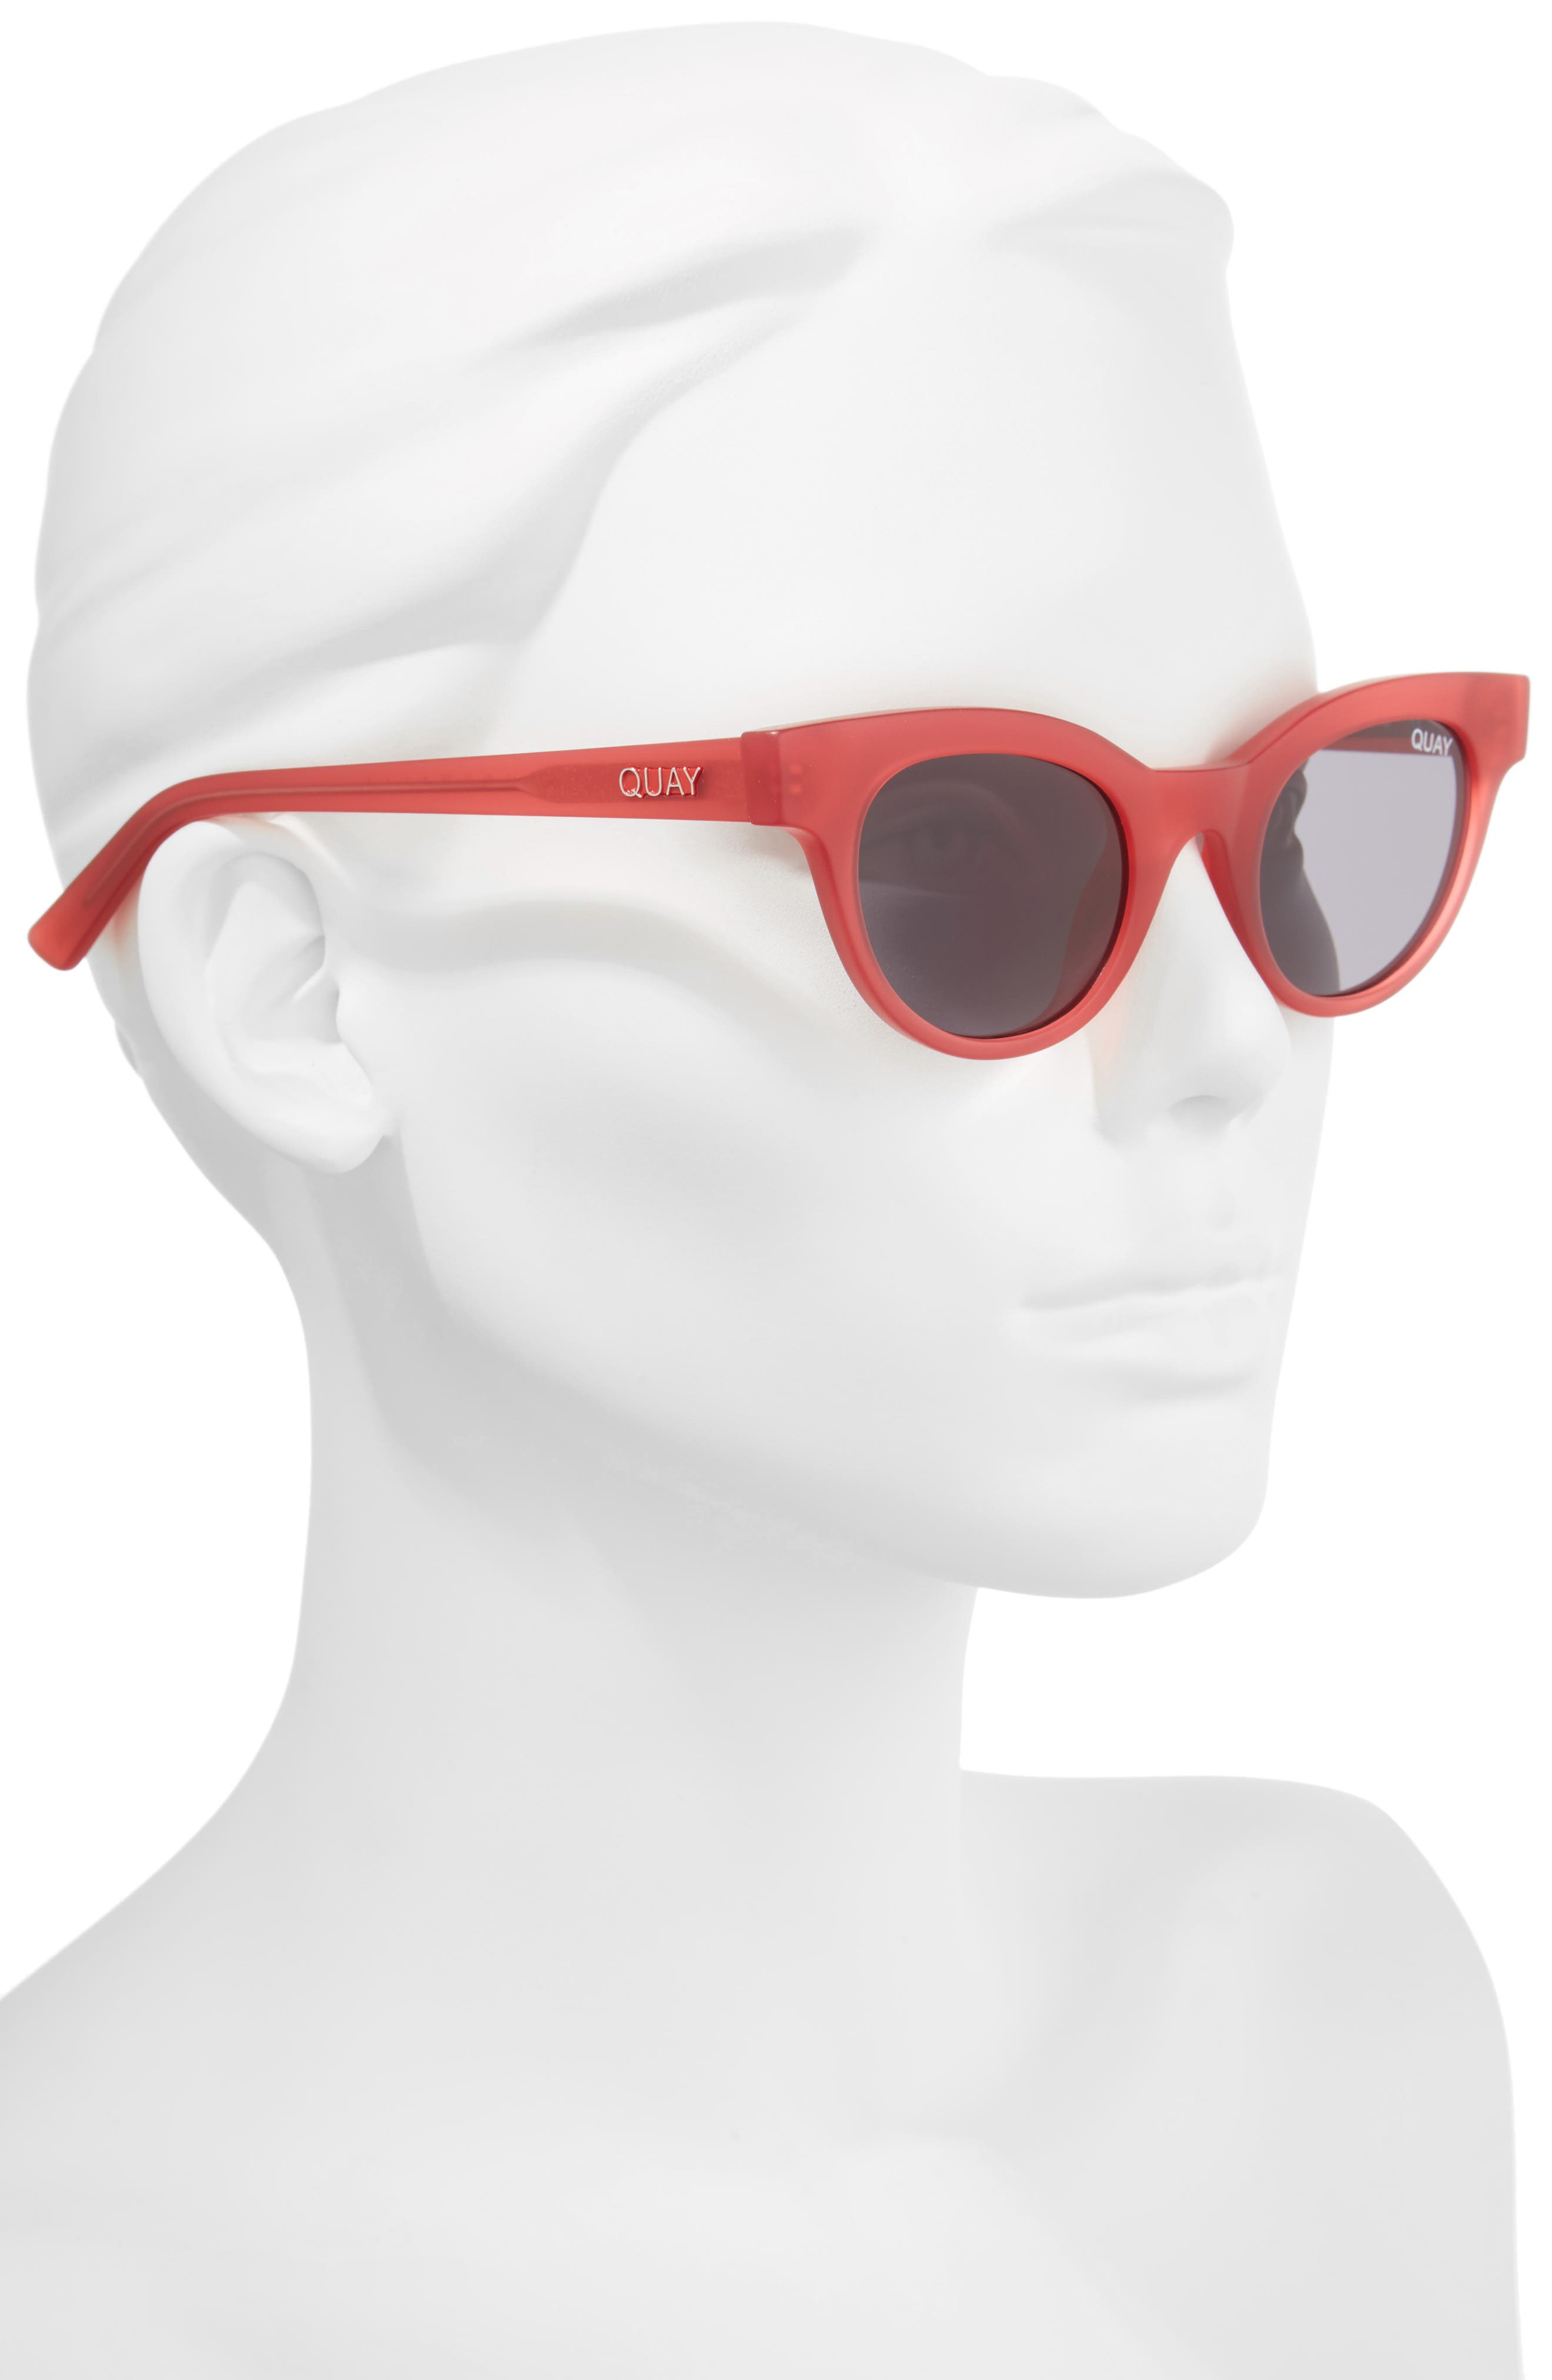 Starstruck 48mm Cat Eye Sunglasses,                             Alternate thumbnail 2, color,                             PINK SMOKE